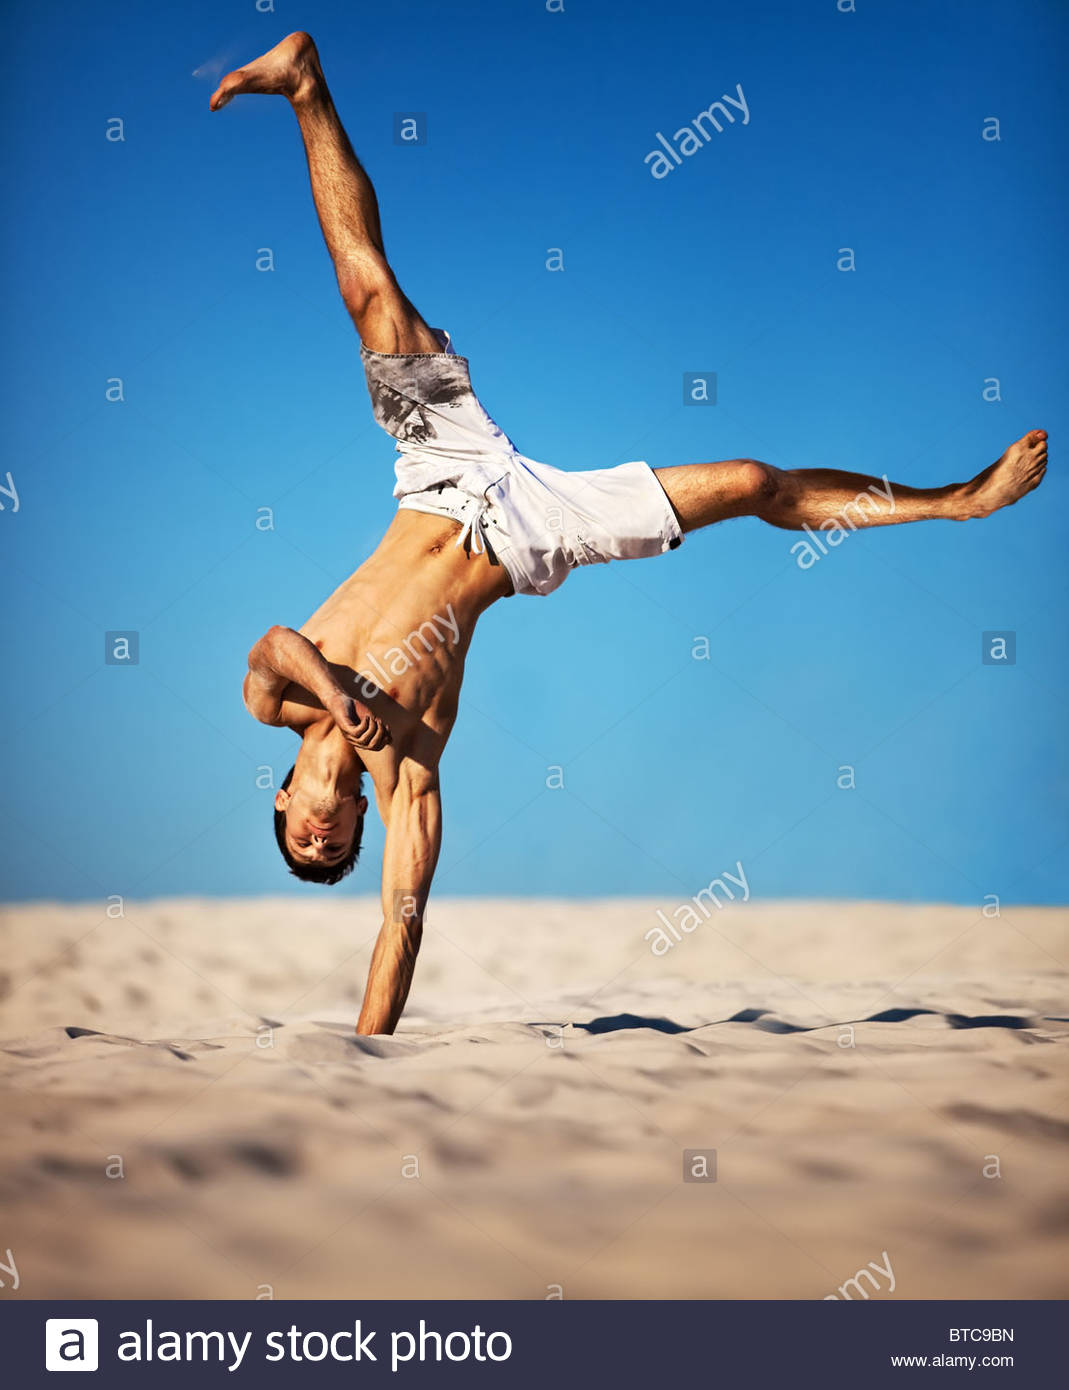 Young sportsman on beach On blue sky background Stock Photo 1069x1390